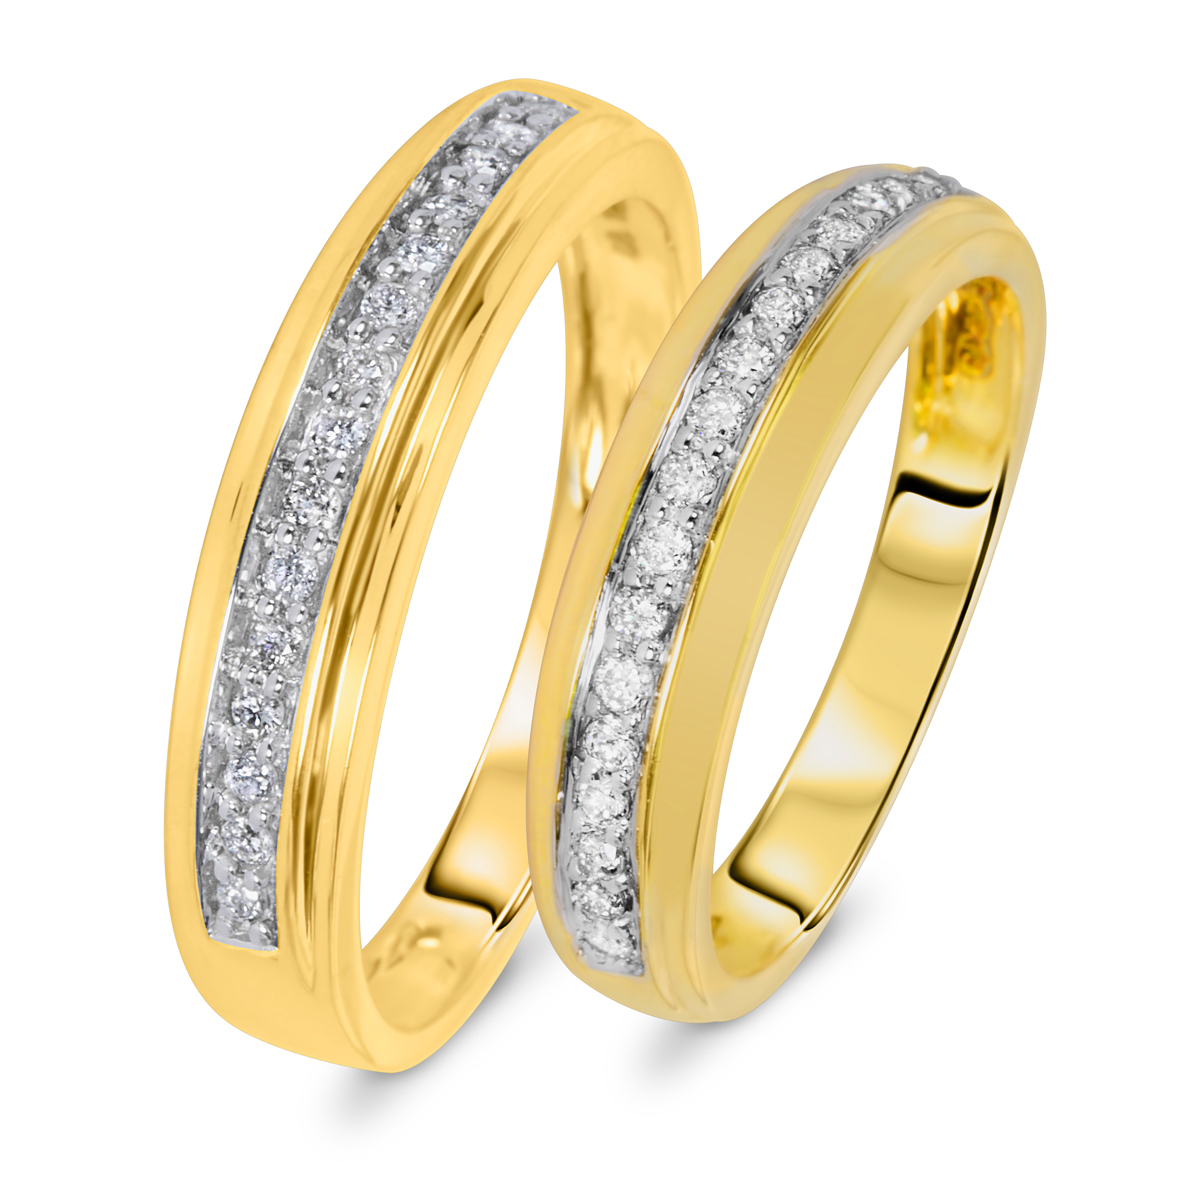 with white regard sets gold and for matching rings groom bride wedding to hers his